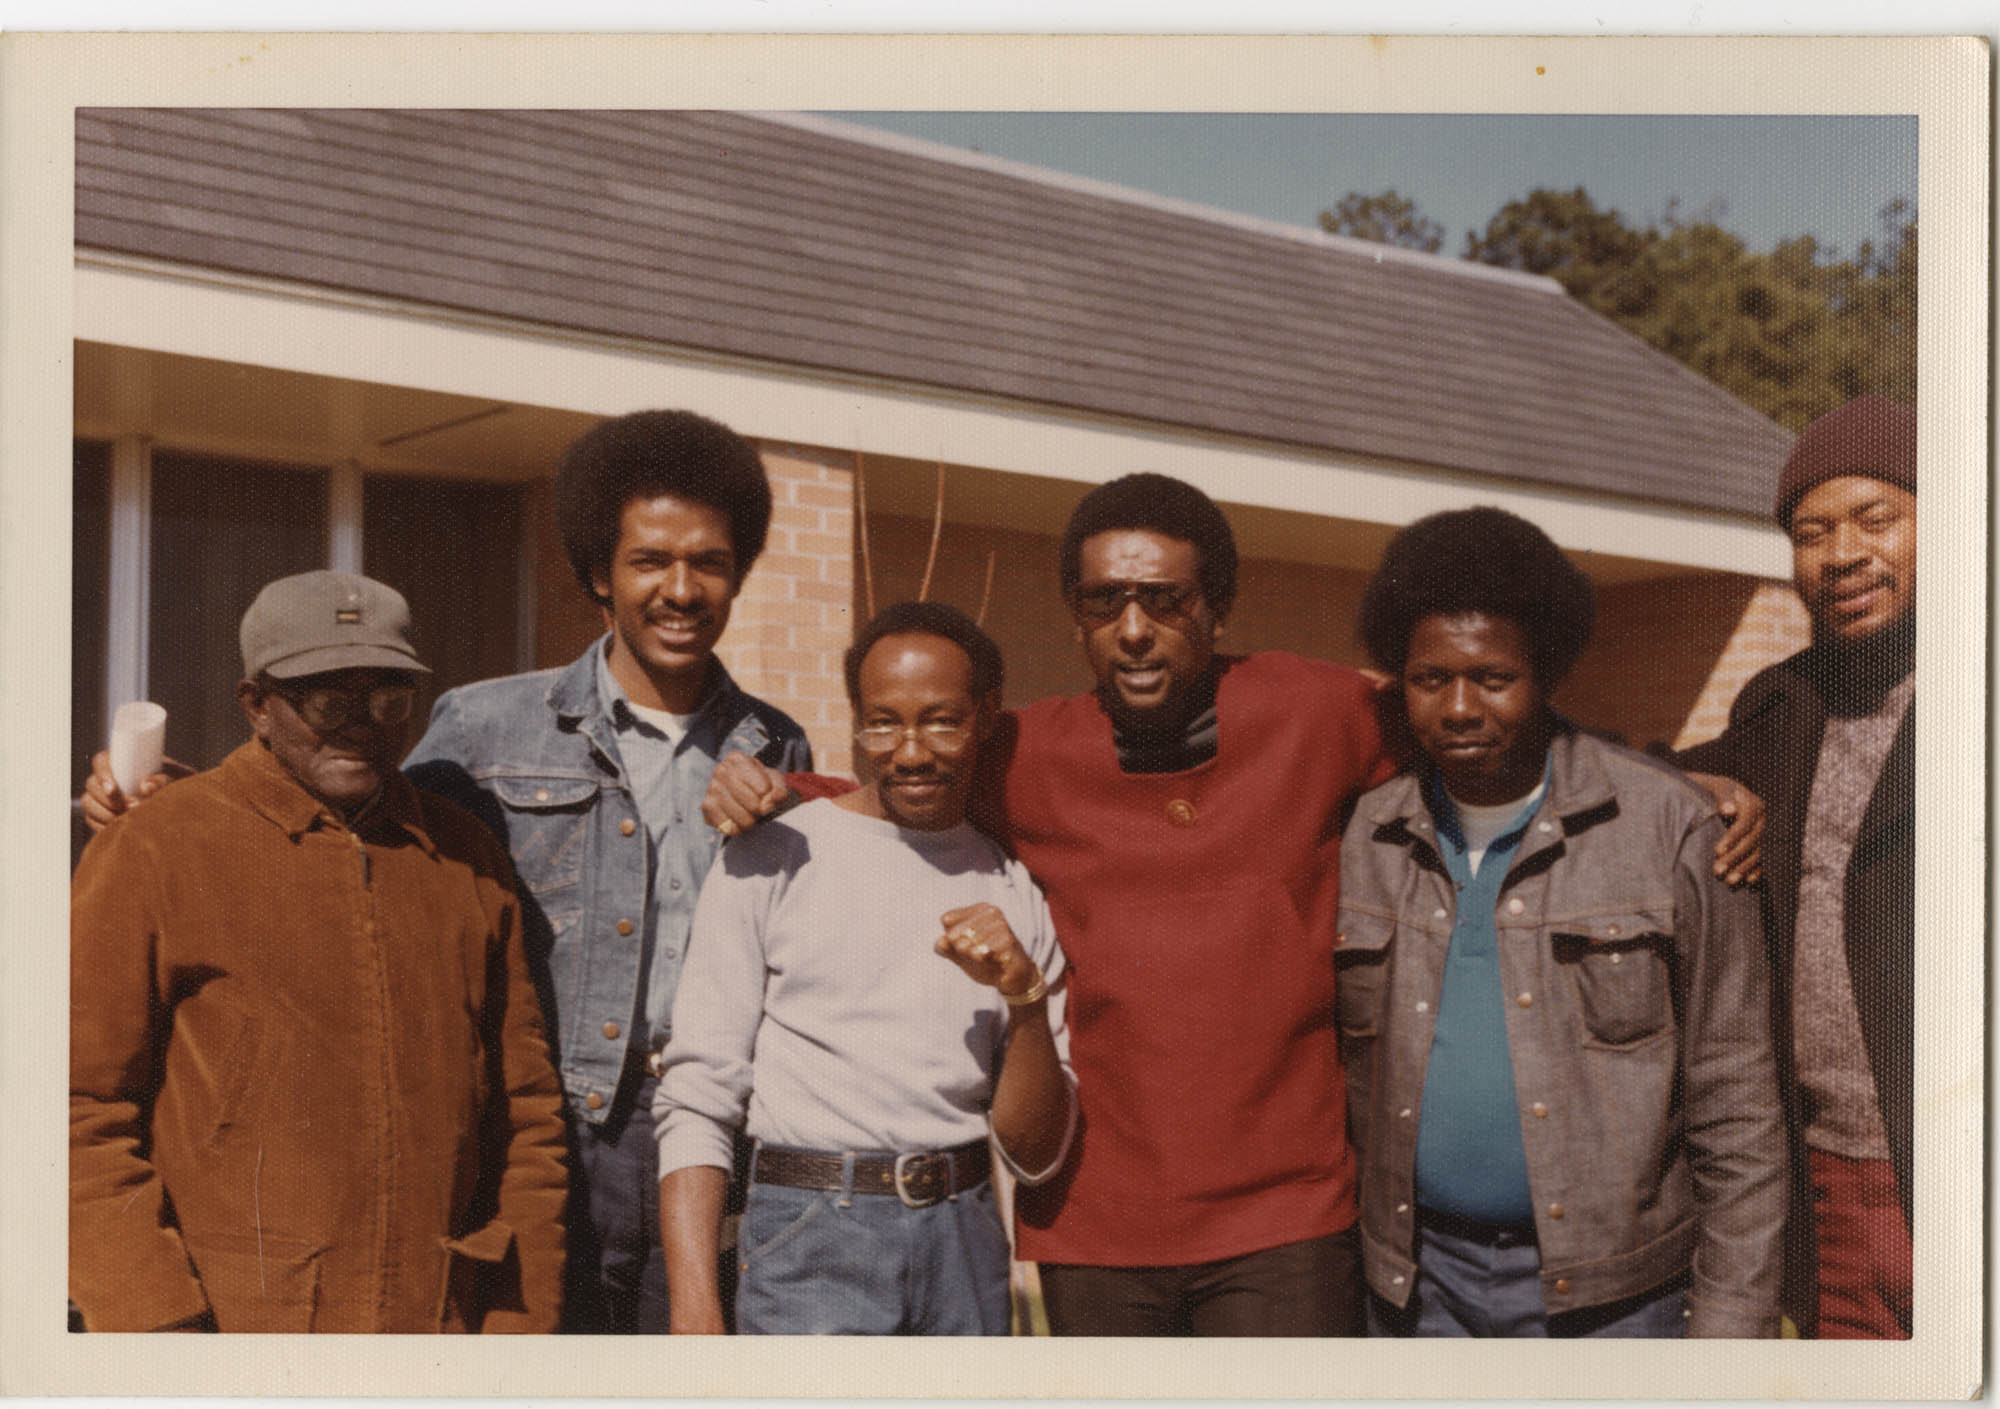 Photograph of Cleveland Sellers with Five People